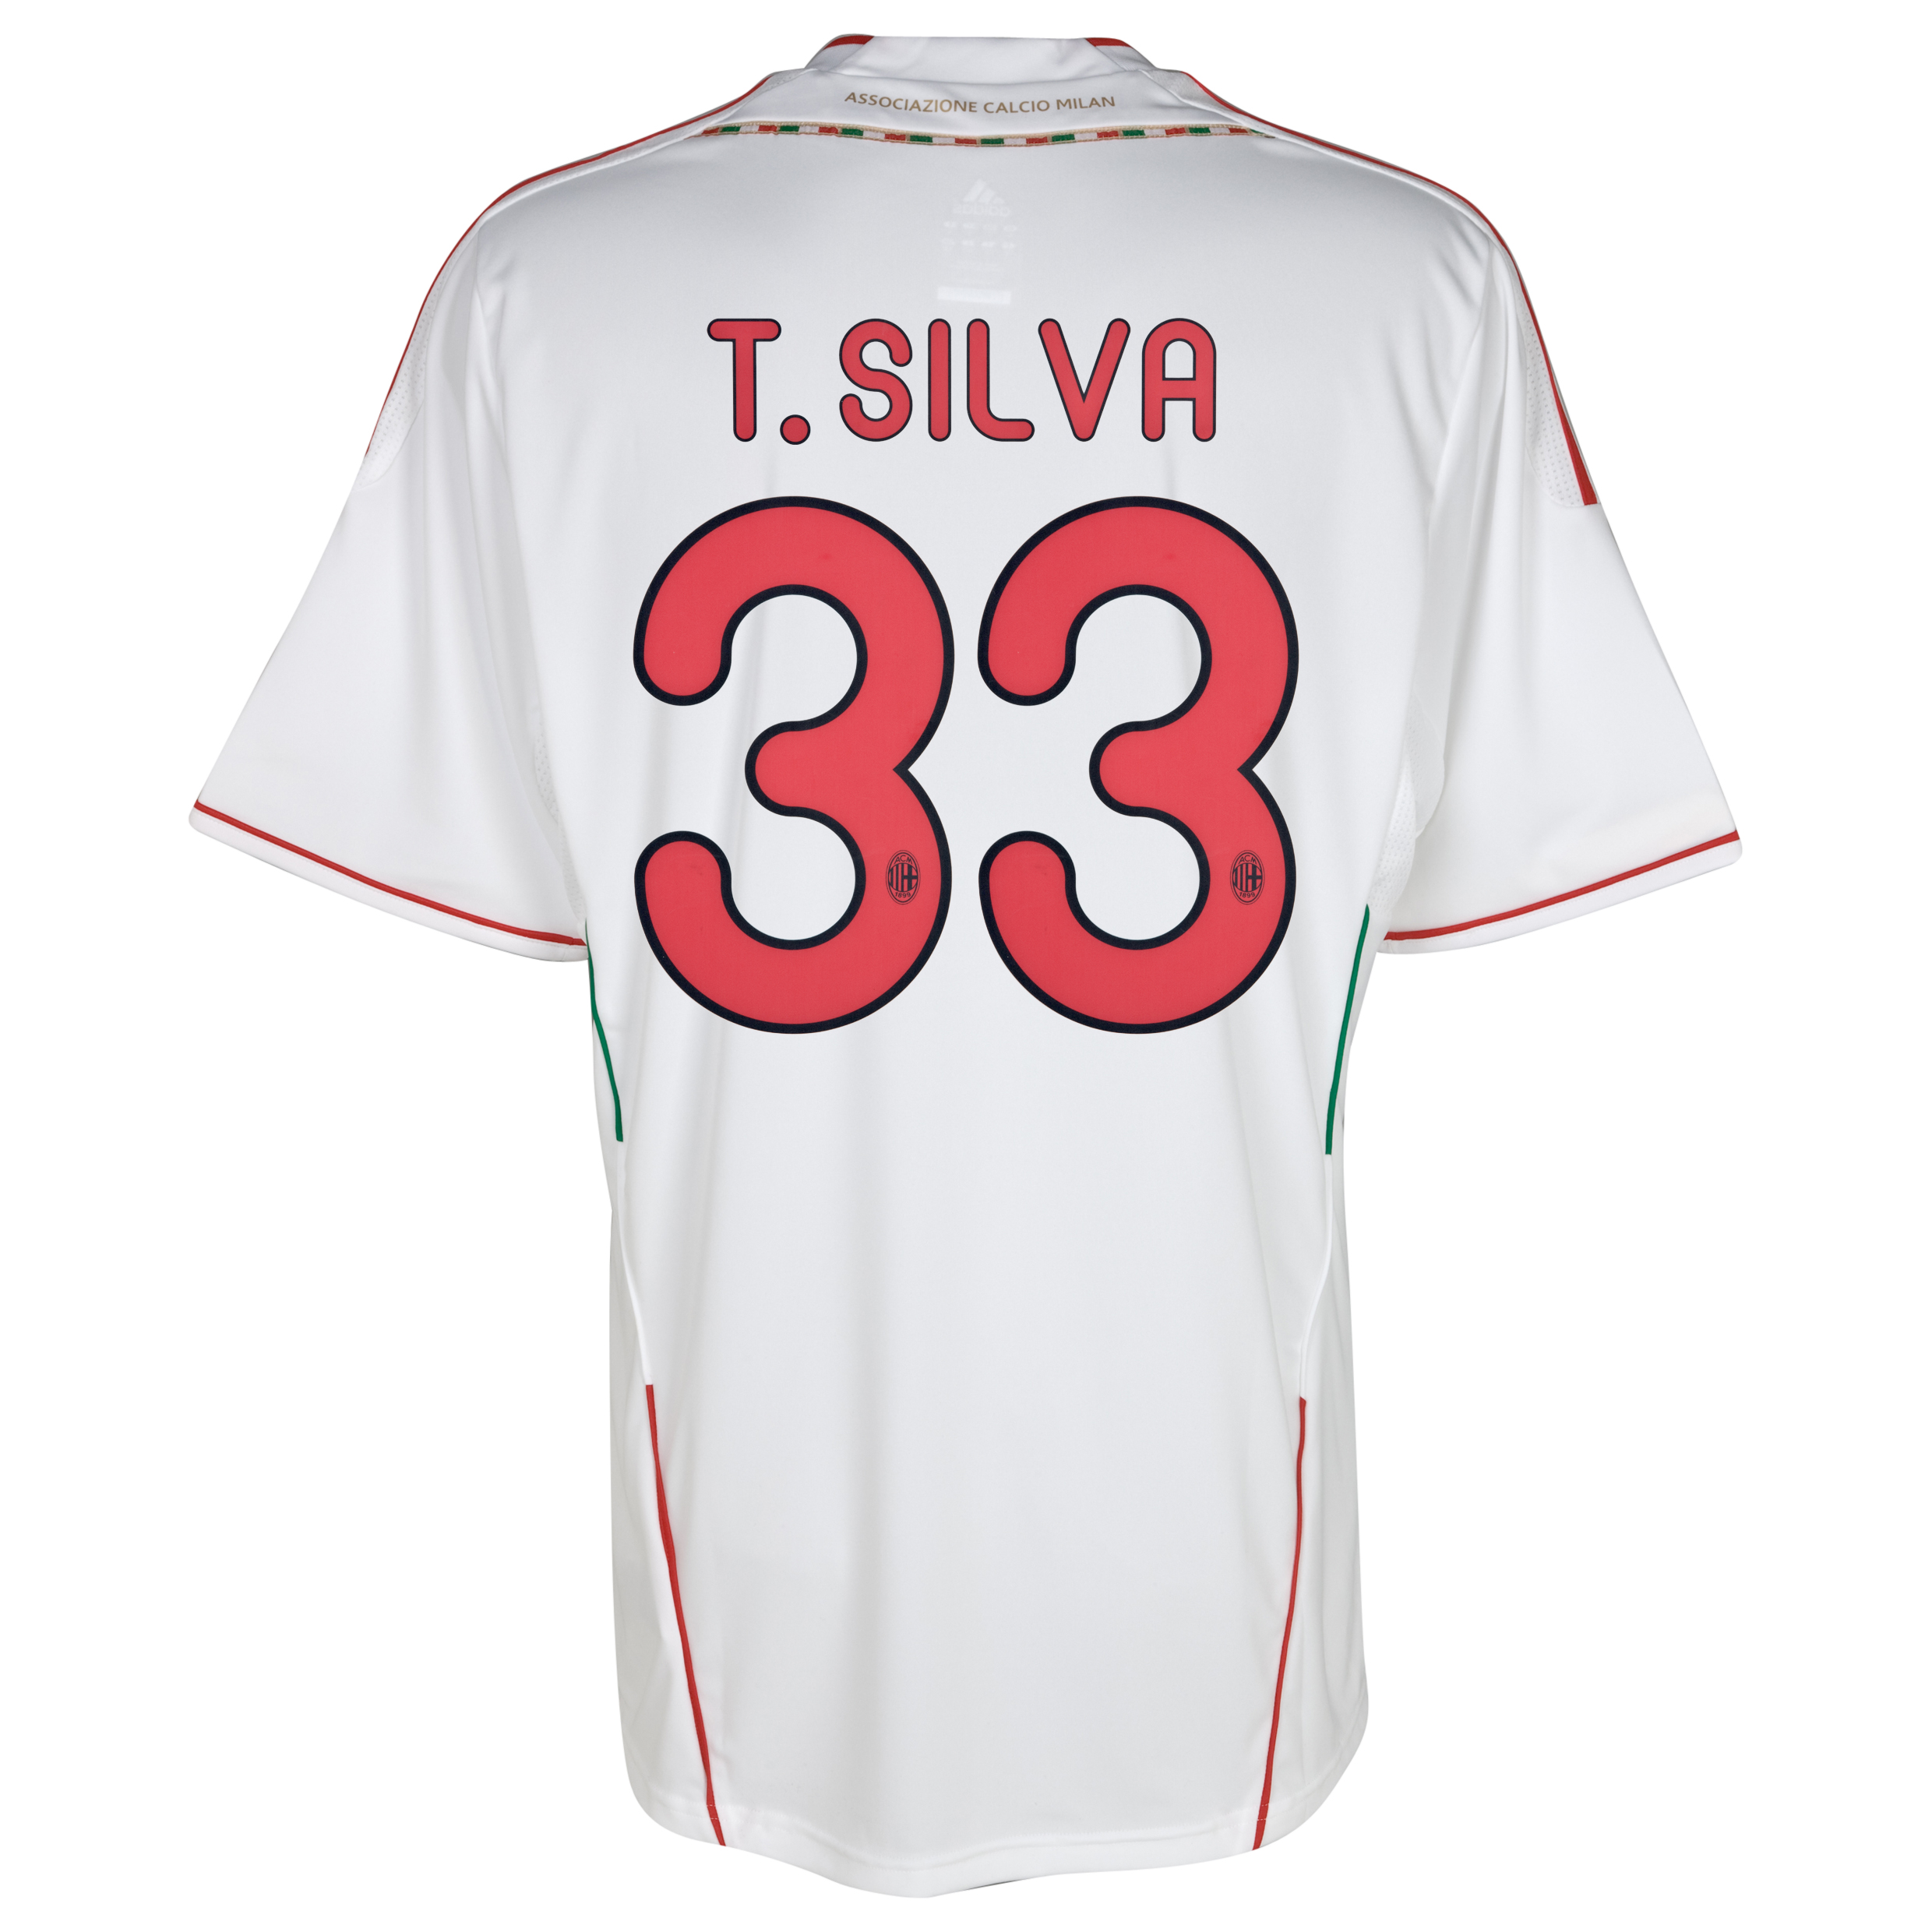 AC Milan Away Shirt 2011/12 with T.Silva 33 printing